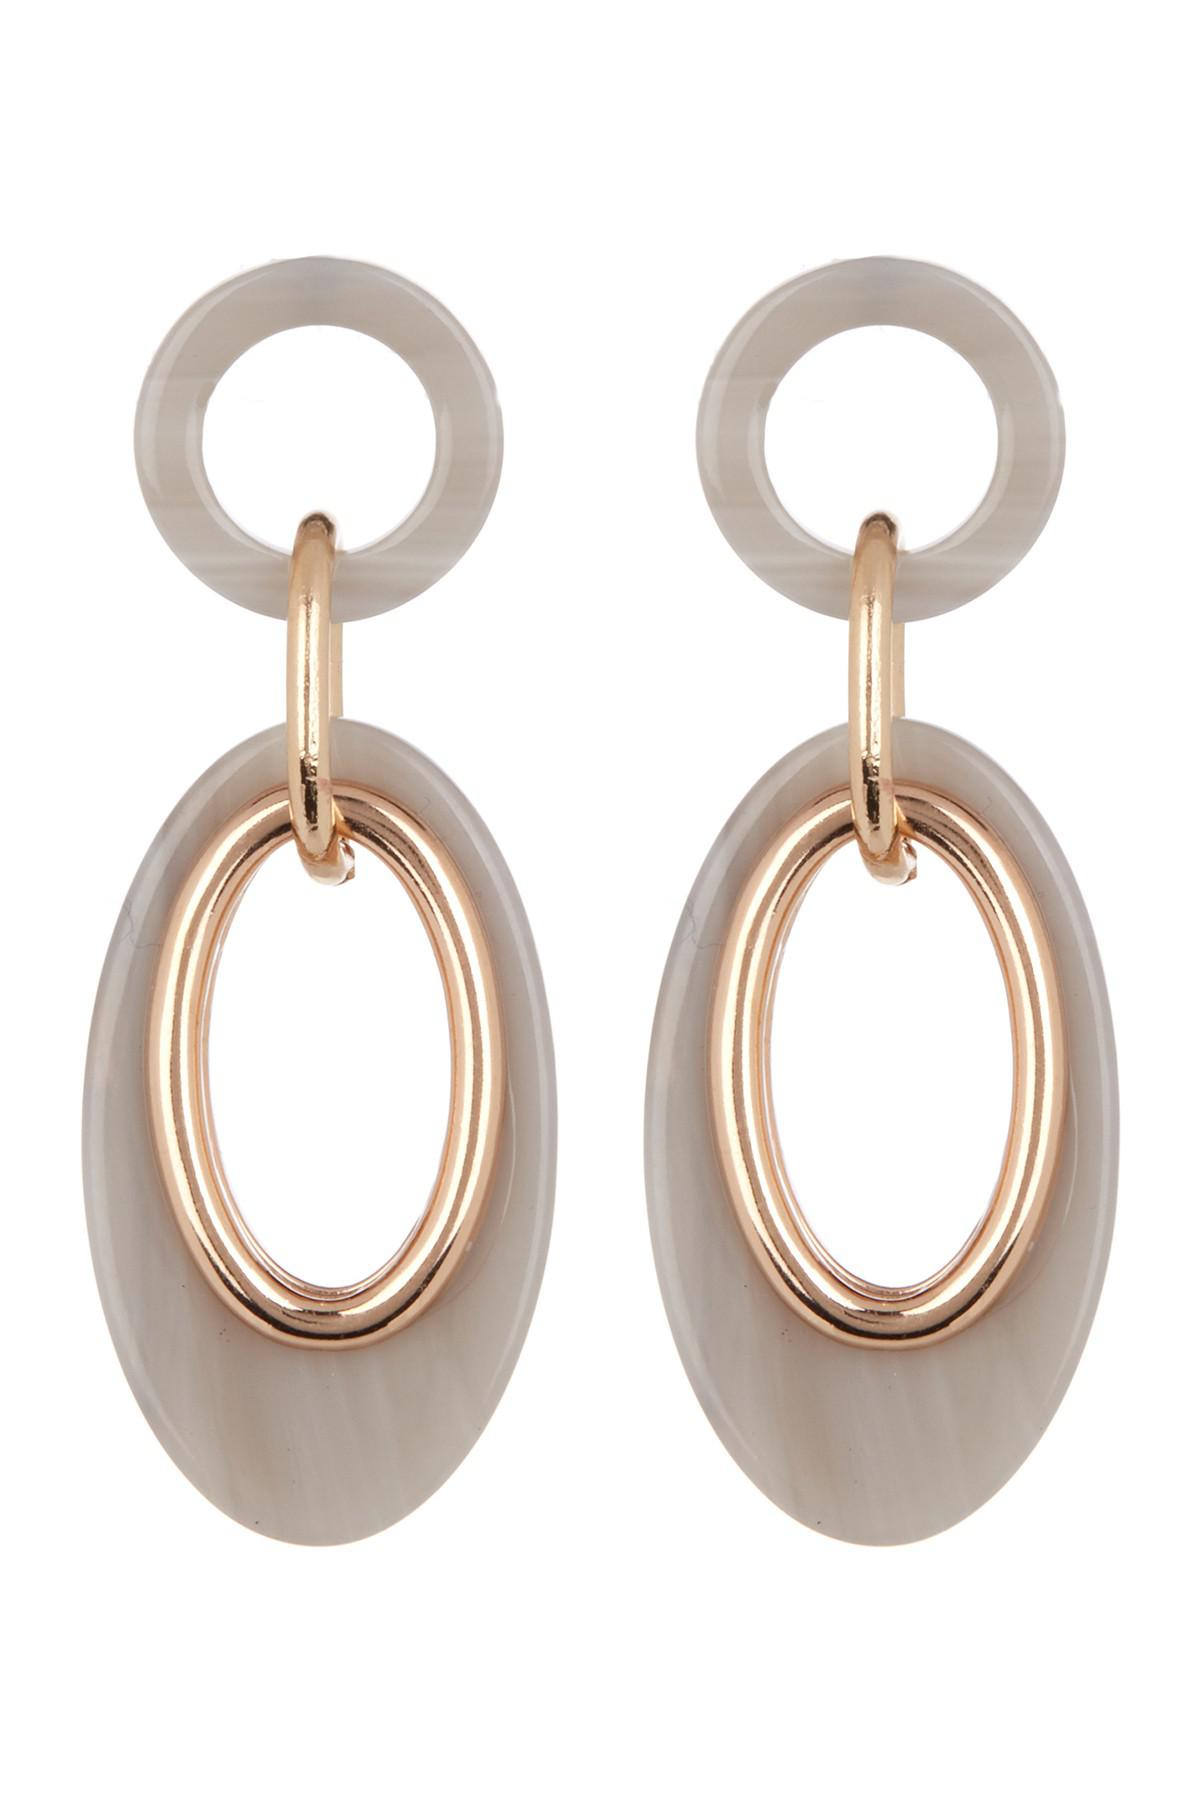 8dd923d1c Vince Camuto. Women's Metallic Resin Link Double Drop Earrings. $15 From Nordstrom  Rack